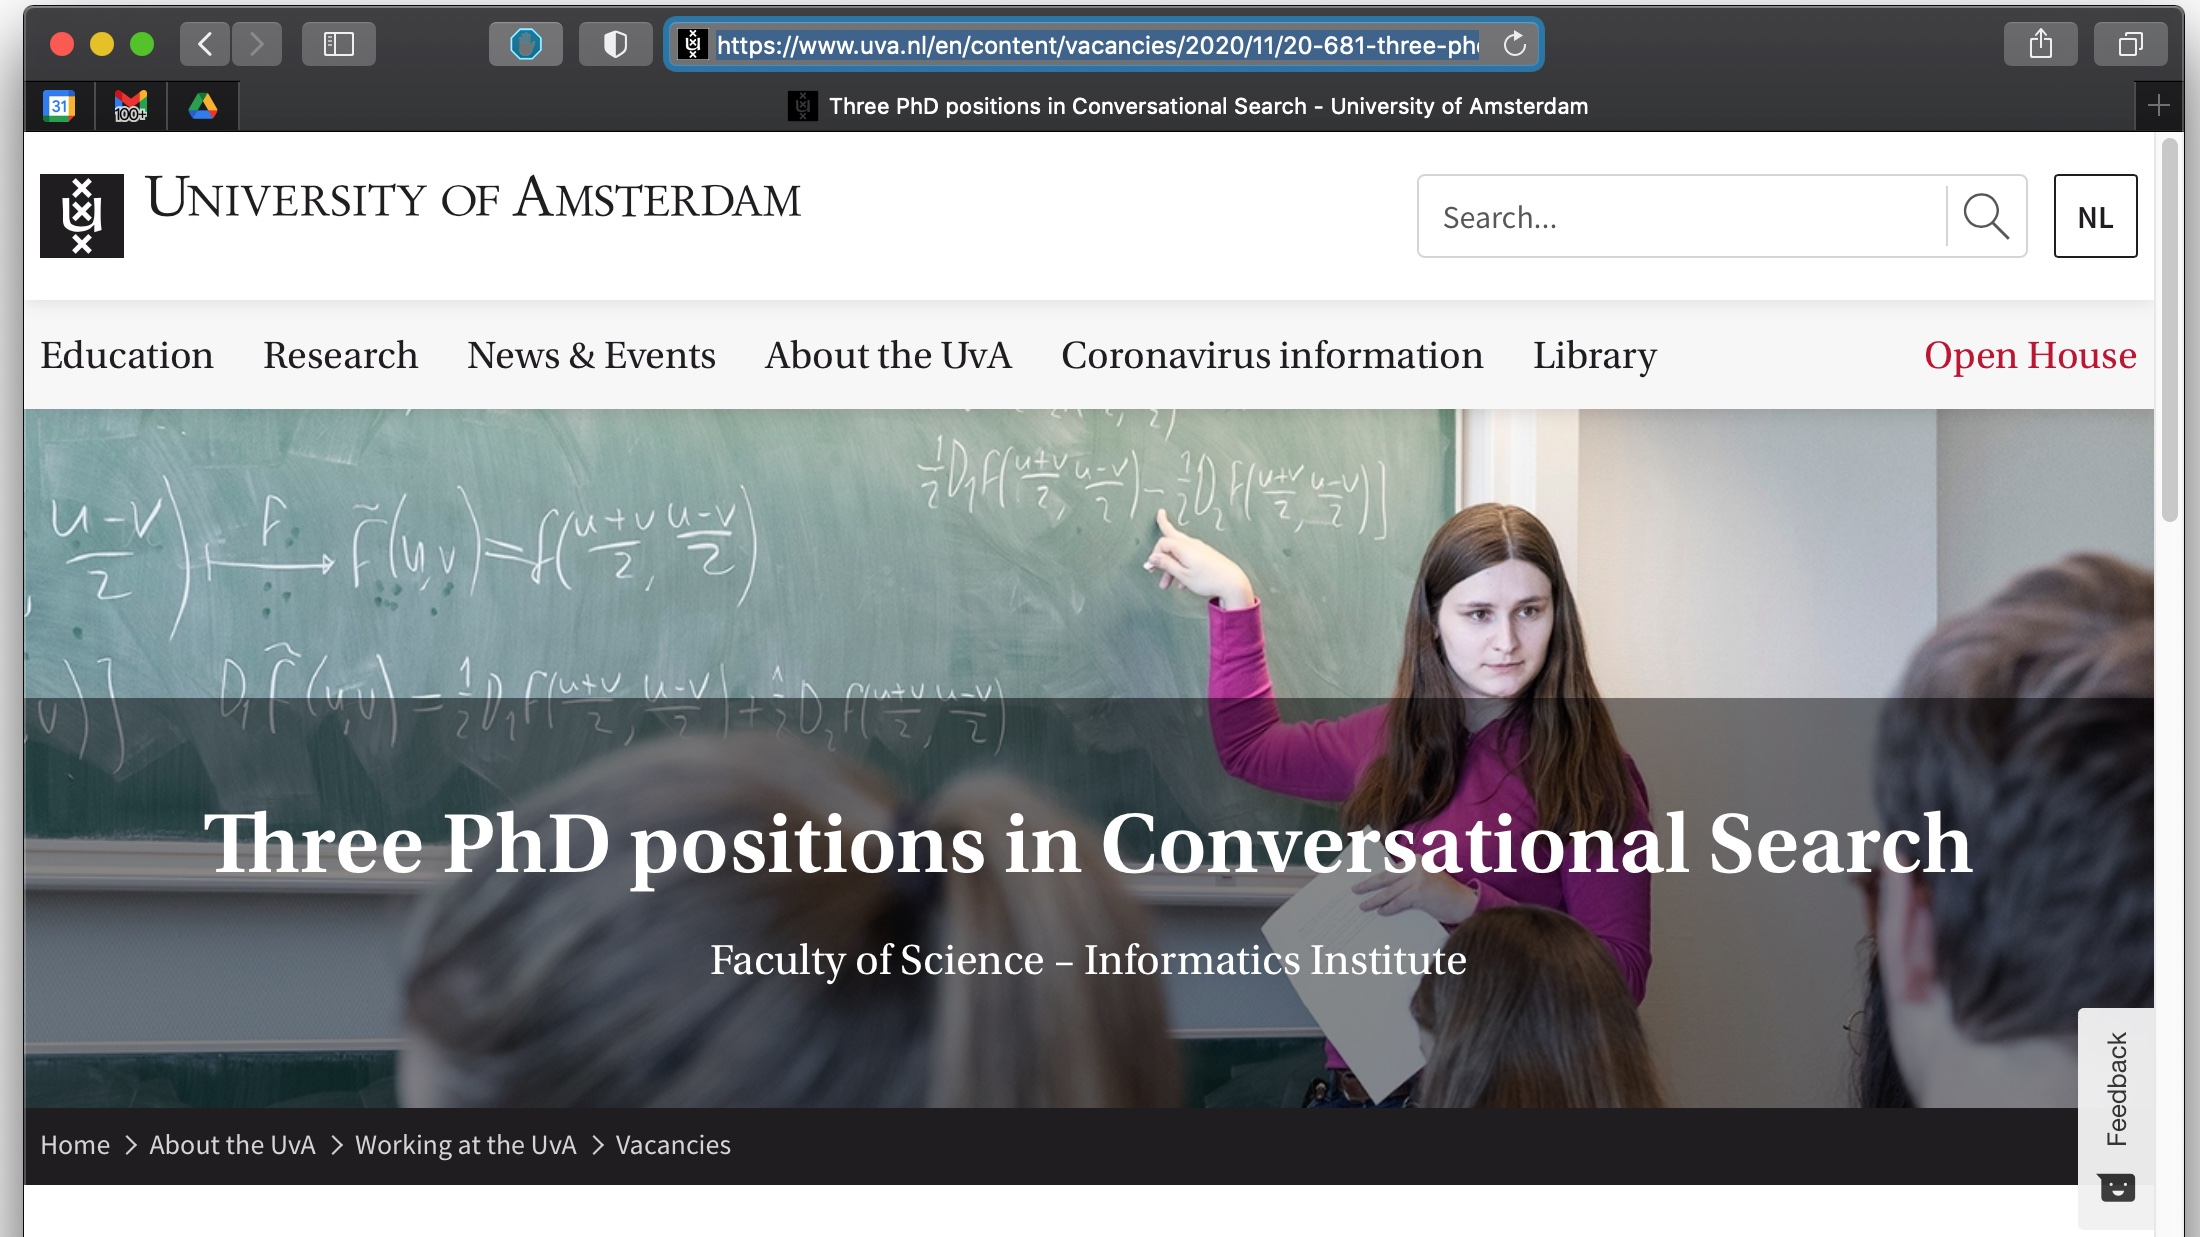 Three PhD positions in Conversational Search